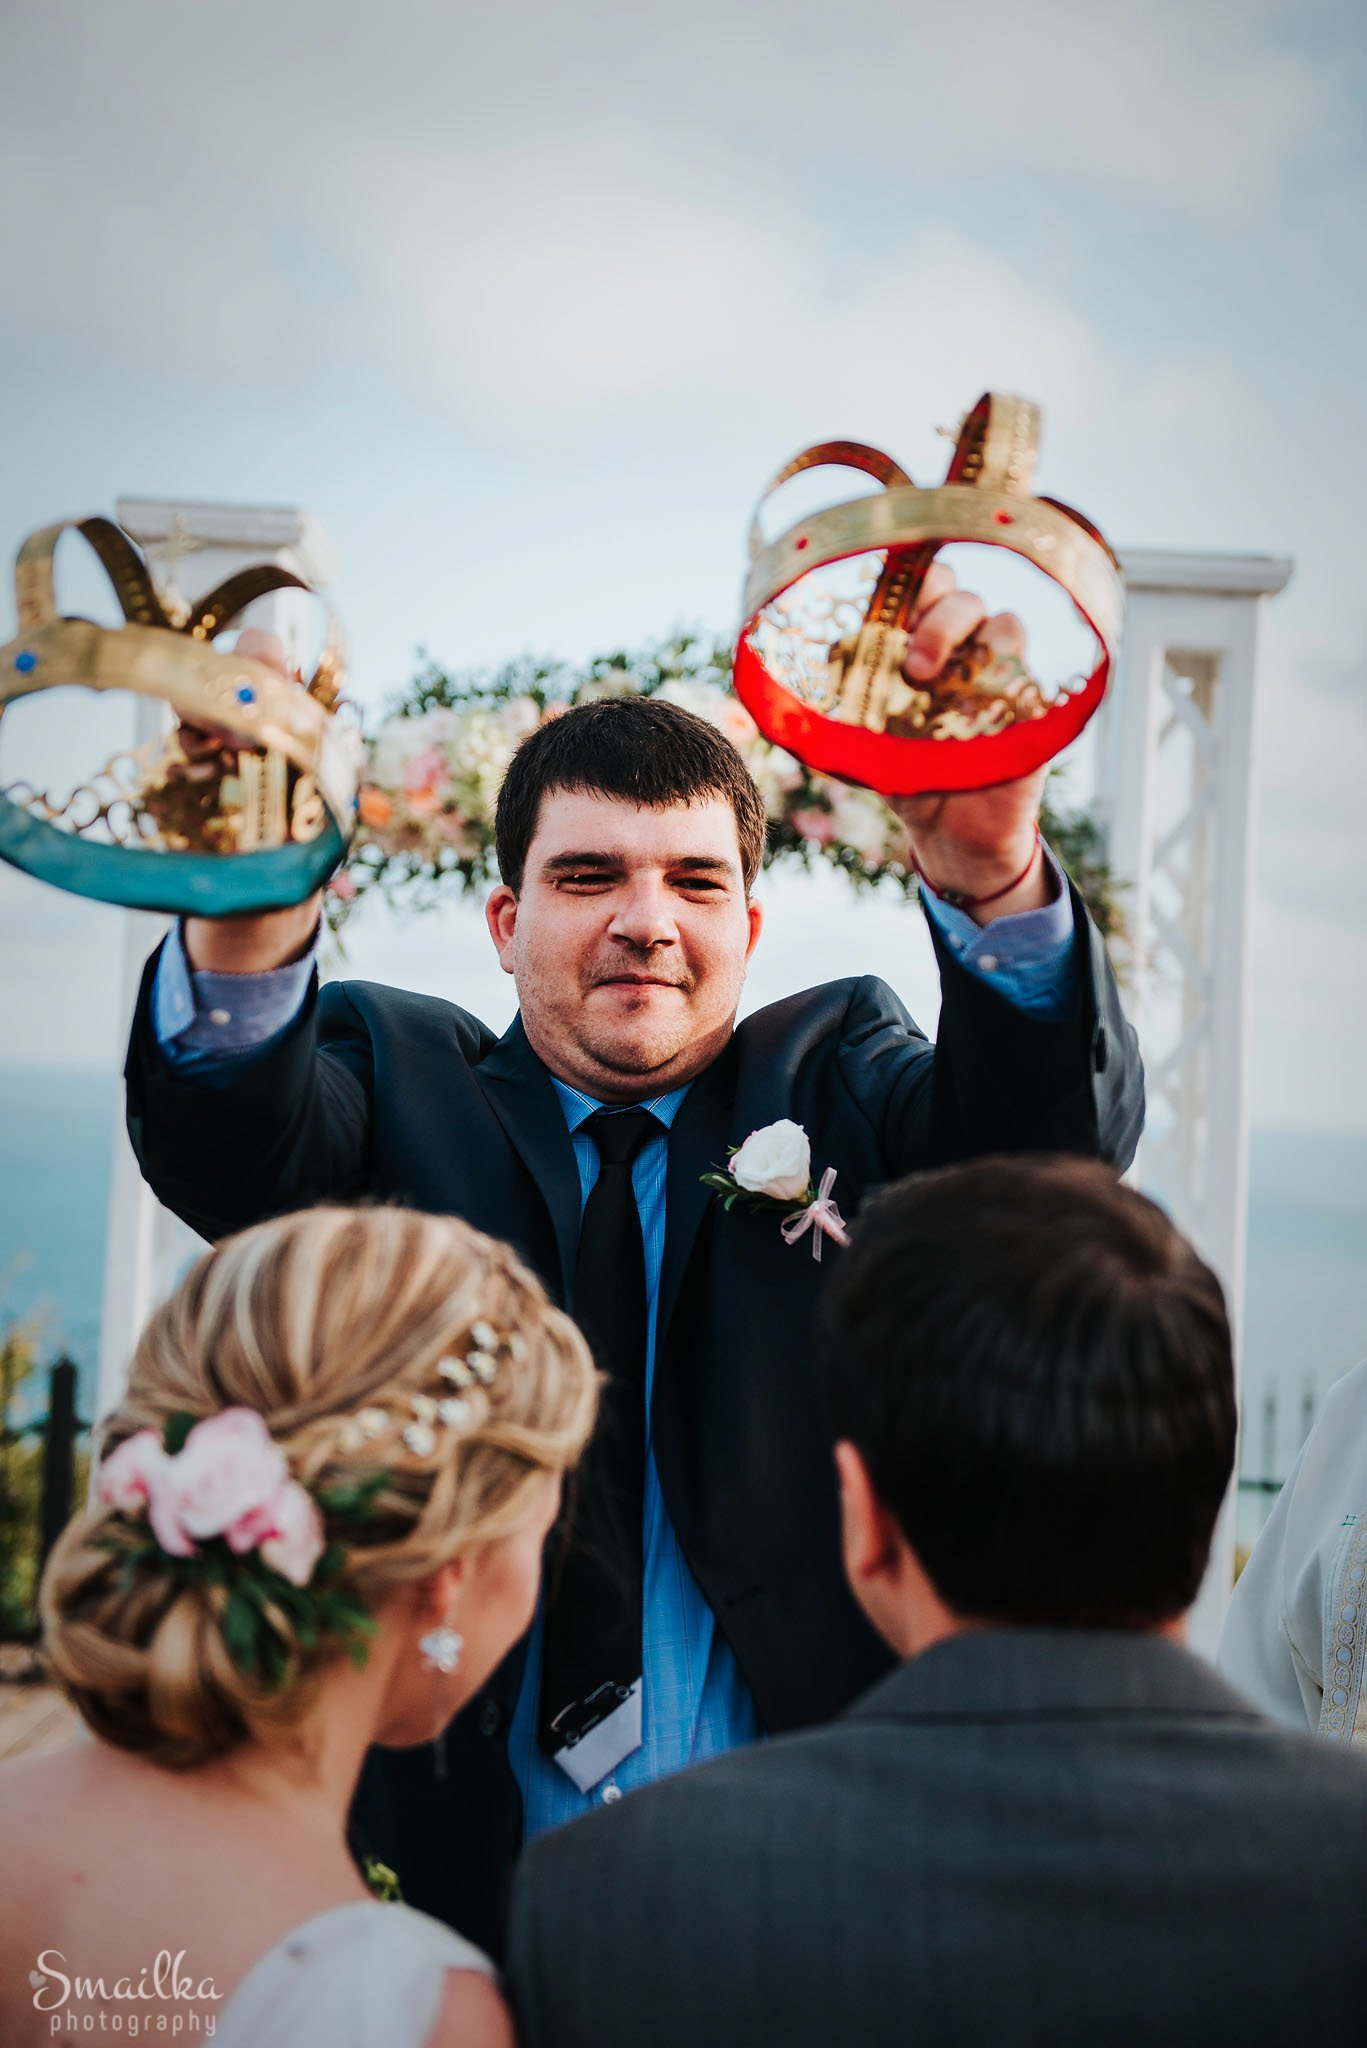 Best man changing wedding crowns over bride and groom